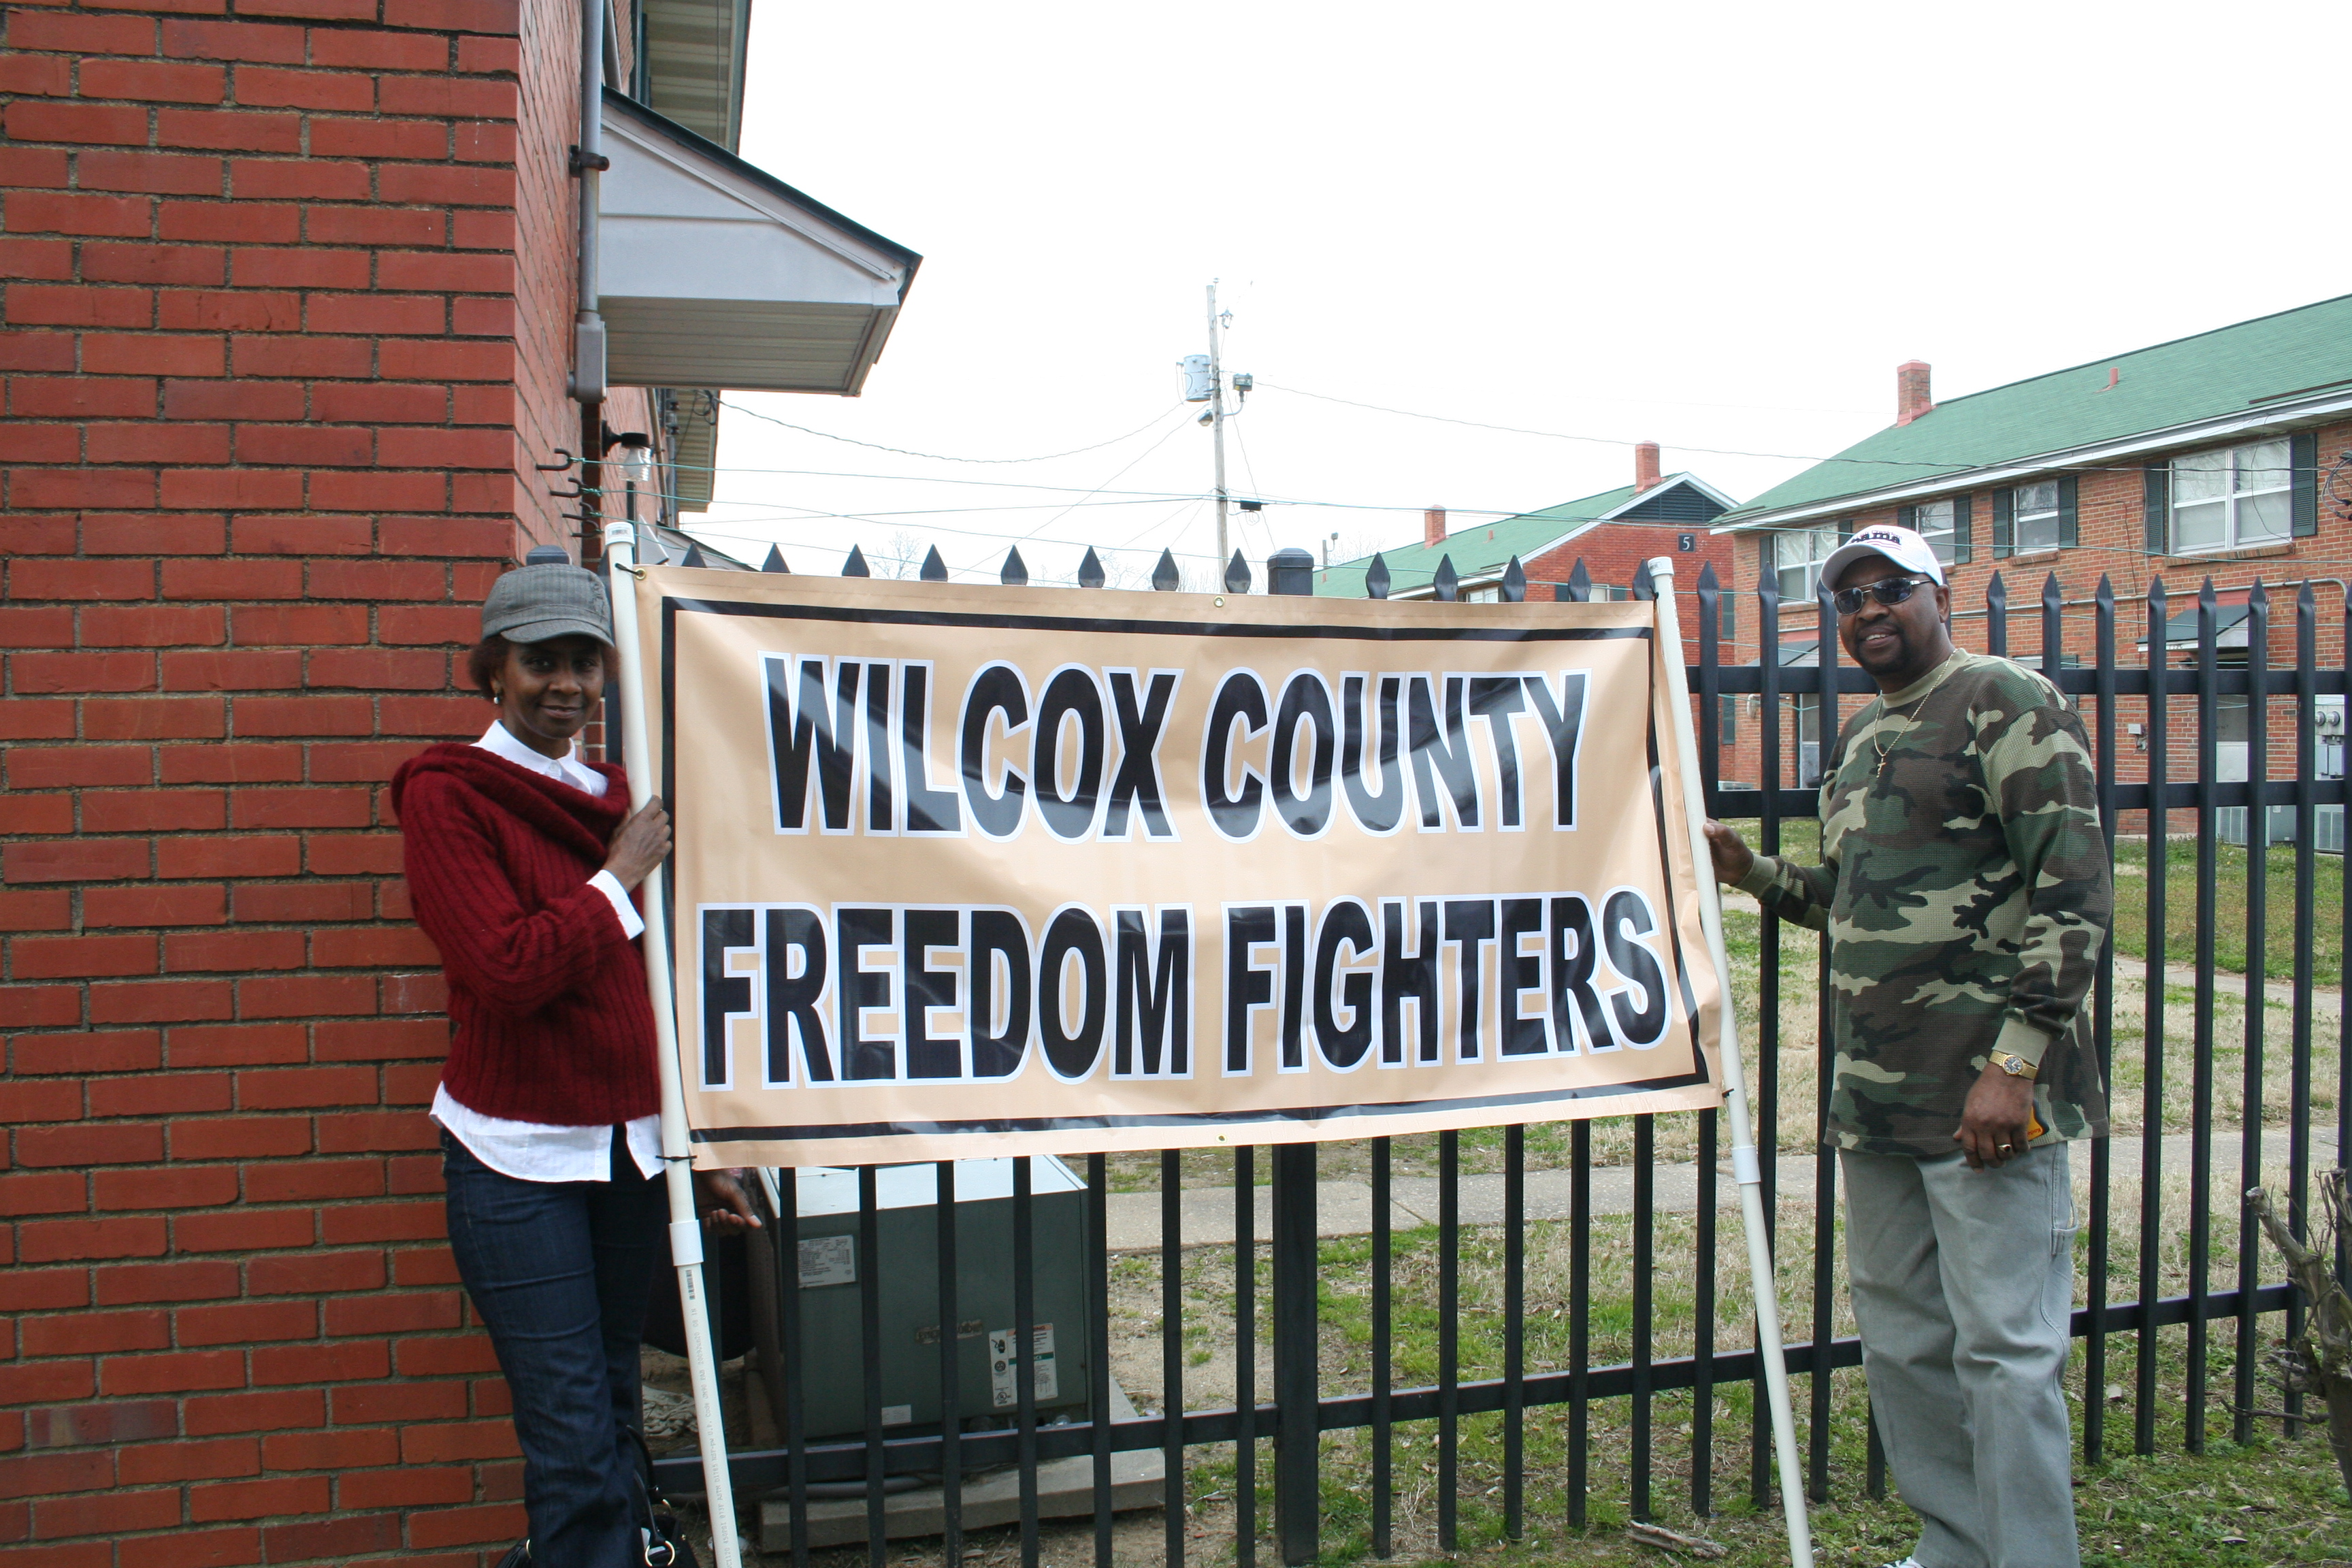 Alabama wilcox county catherine - Betty Anderson And Robert Powell With Banner 2010